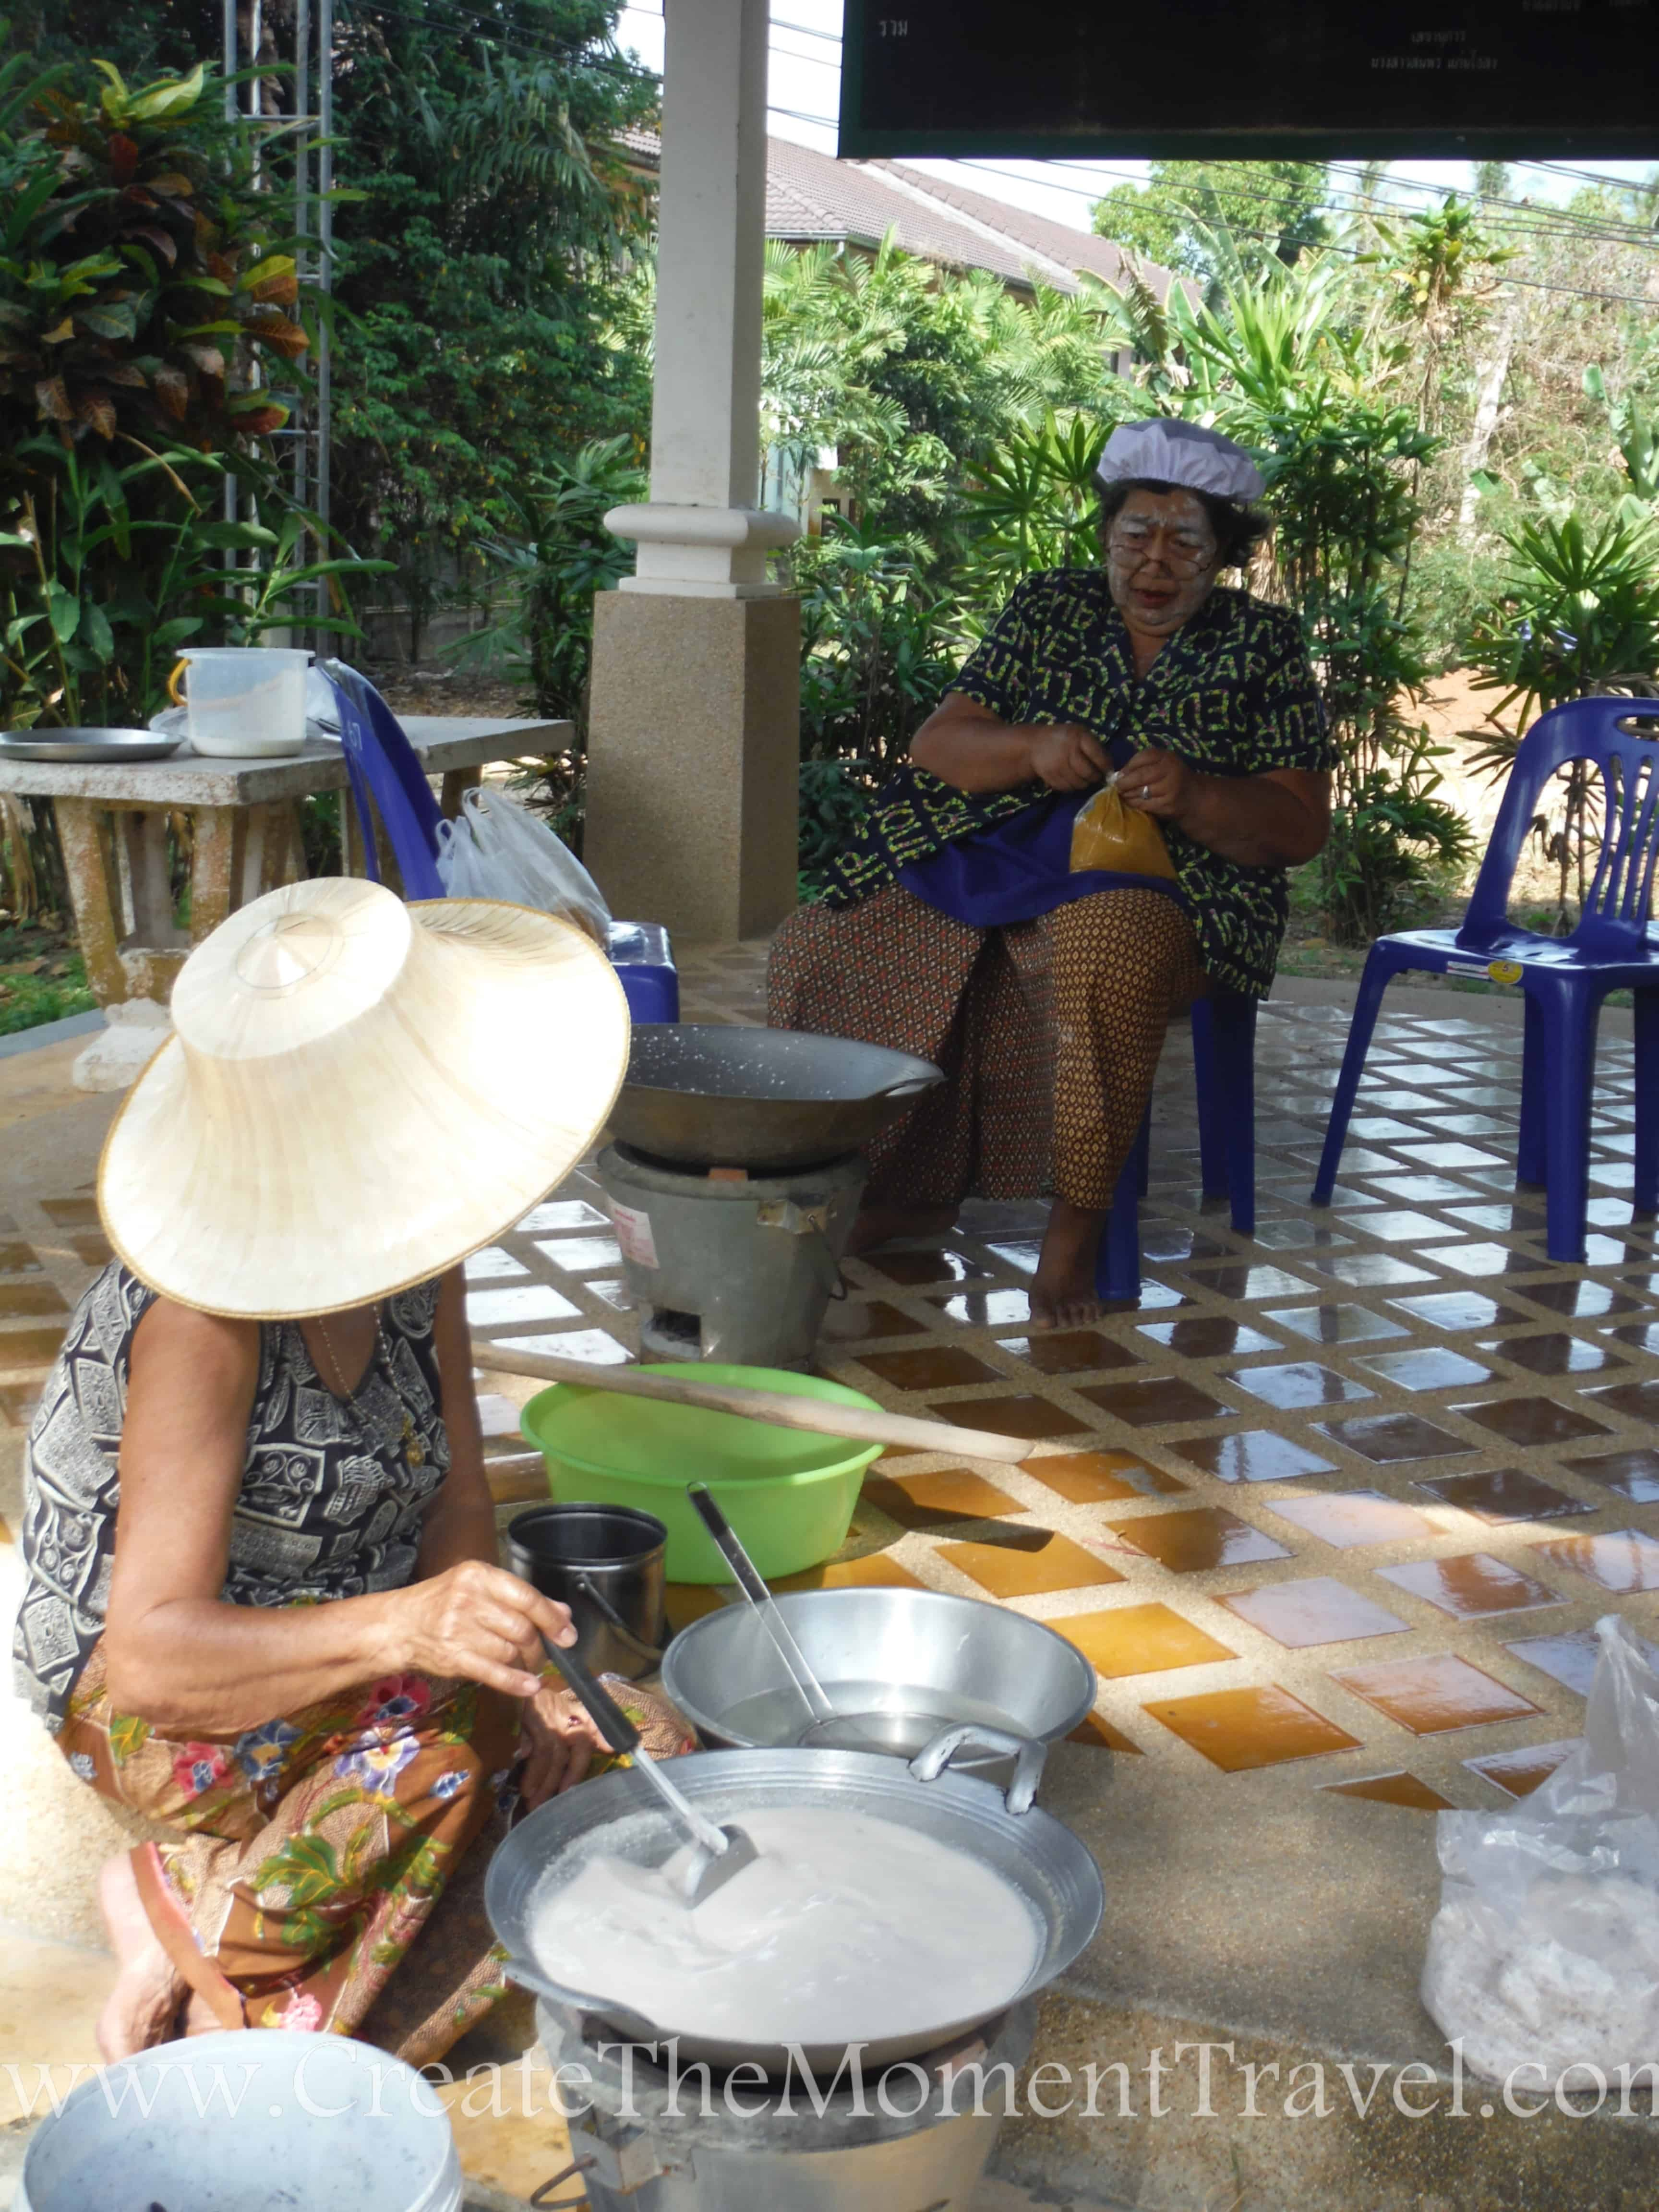 Local Women Preparing Roadside Food in Koh Samui Thailand by Create The Moment Travel